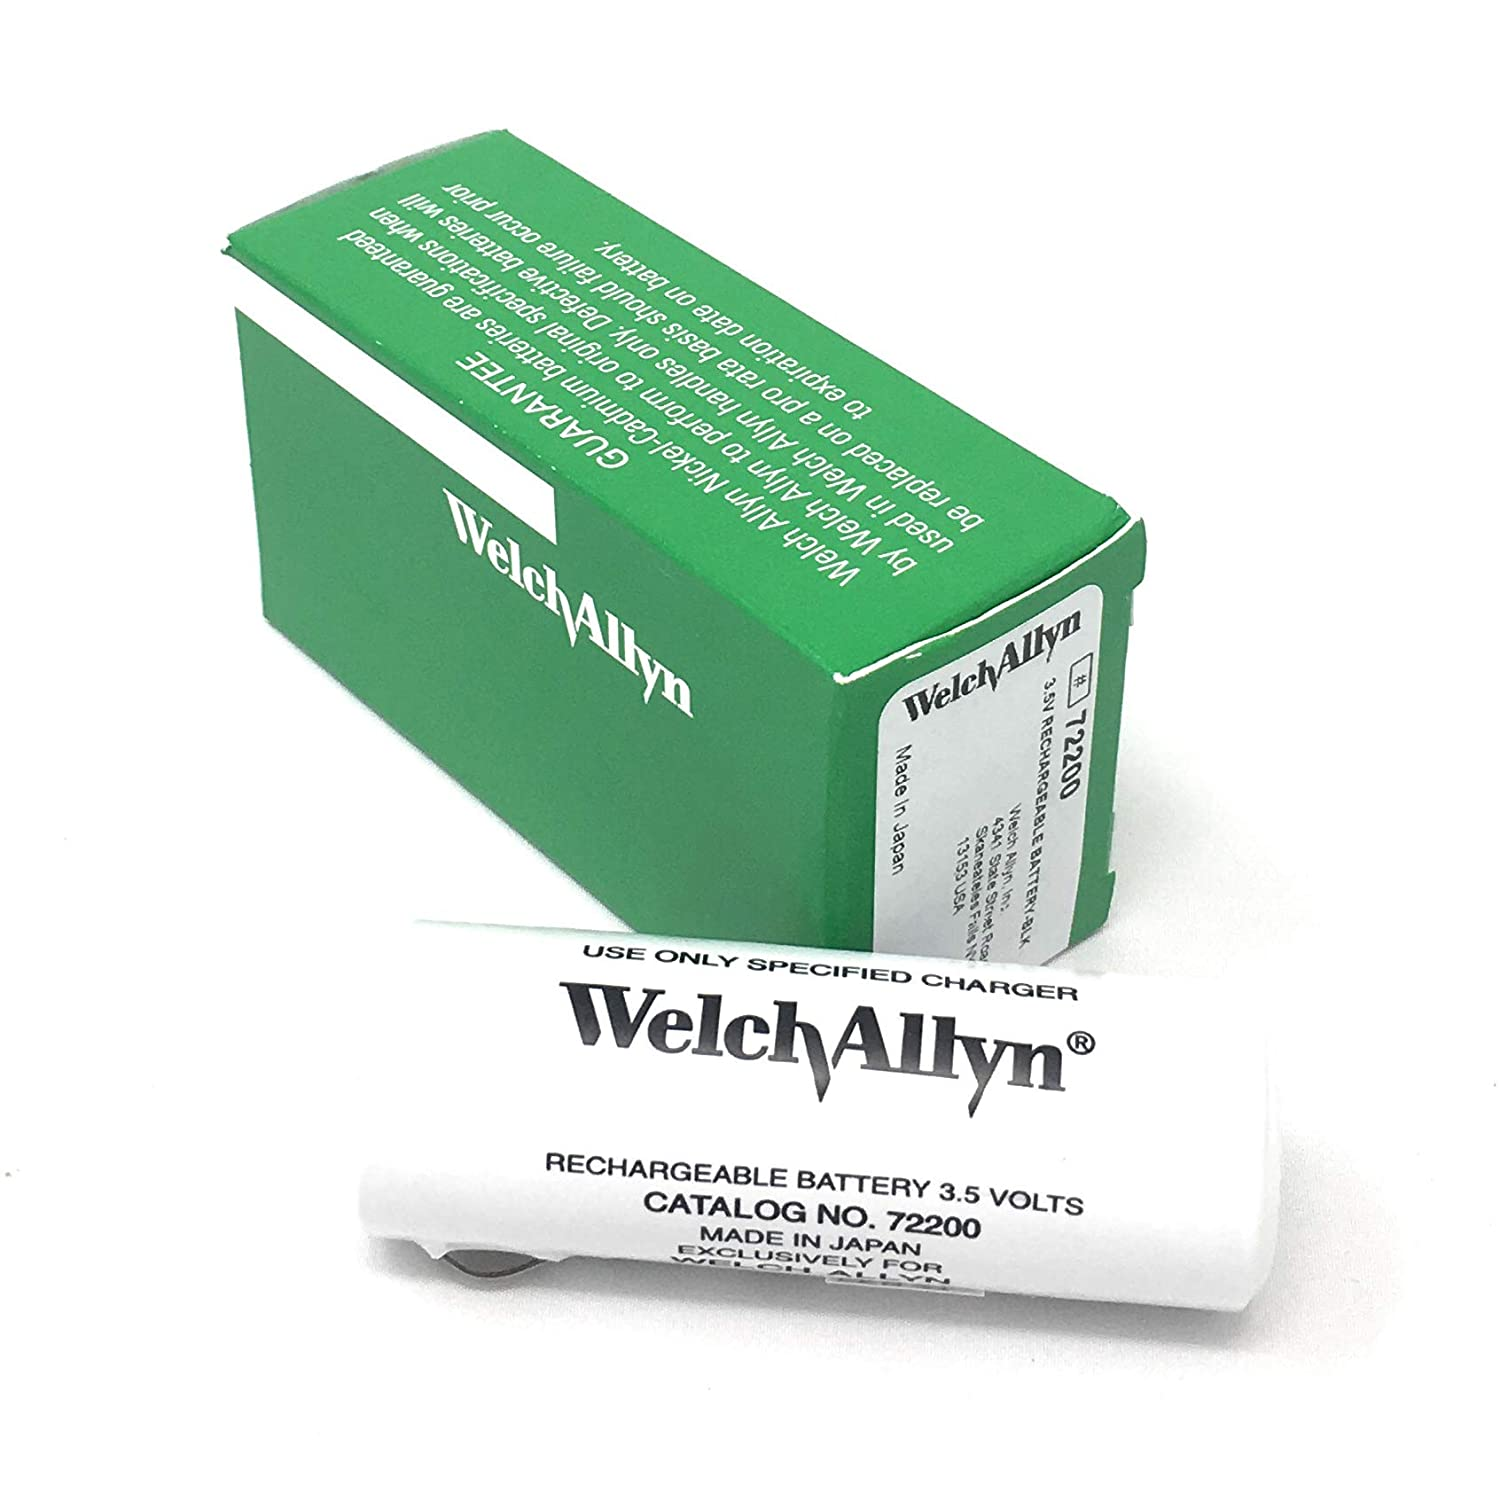 Genuine Welch Allyn 3.5V 72200 Rechargeable Battery